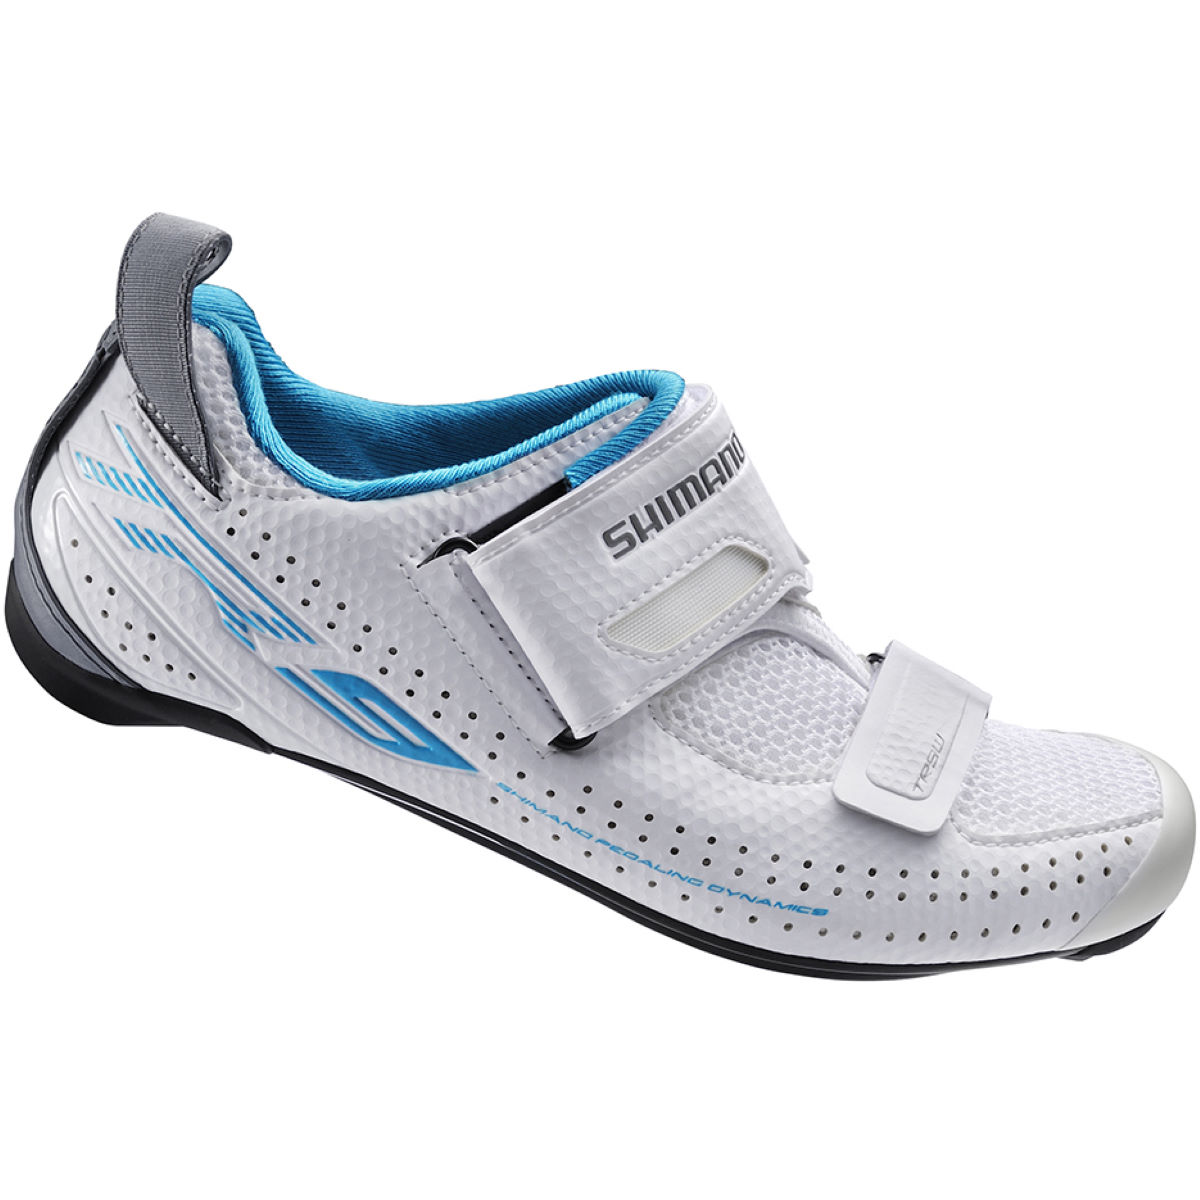 Shimano Women's TR9 SPD-SL Triathlon Shoes - Zapatillas de triatlón